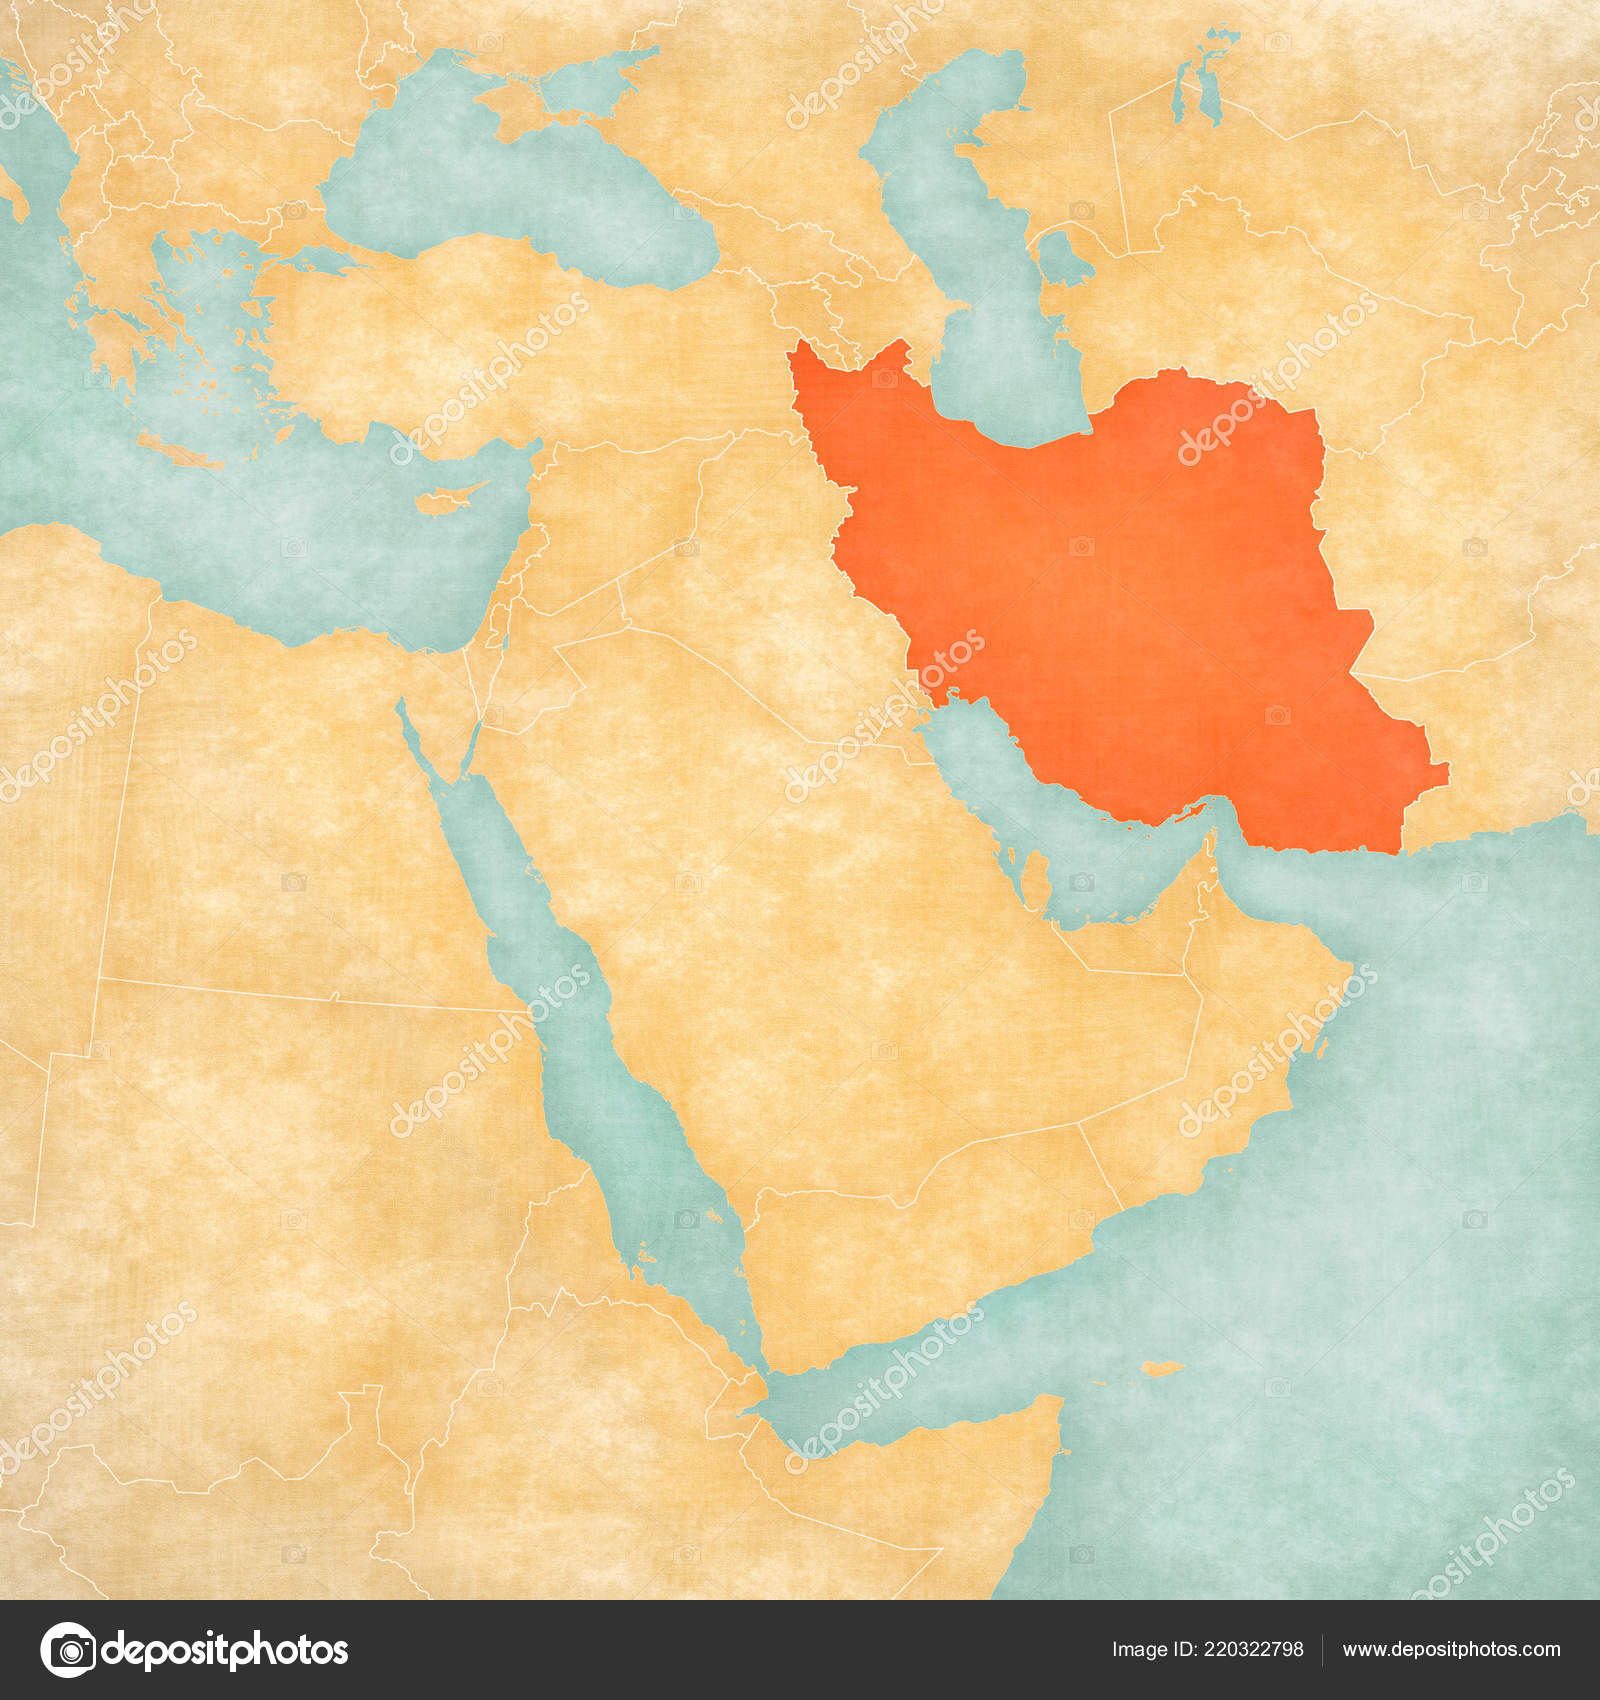 Iran Map Middle East Western Asia Soft Grunge Vintage Style ...